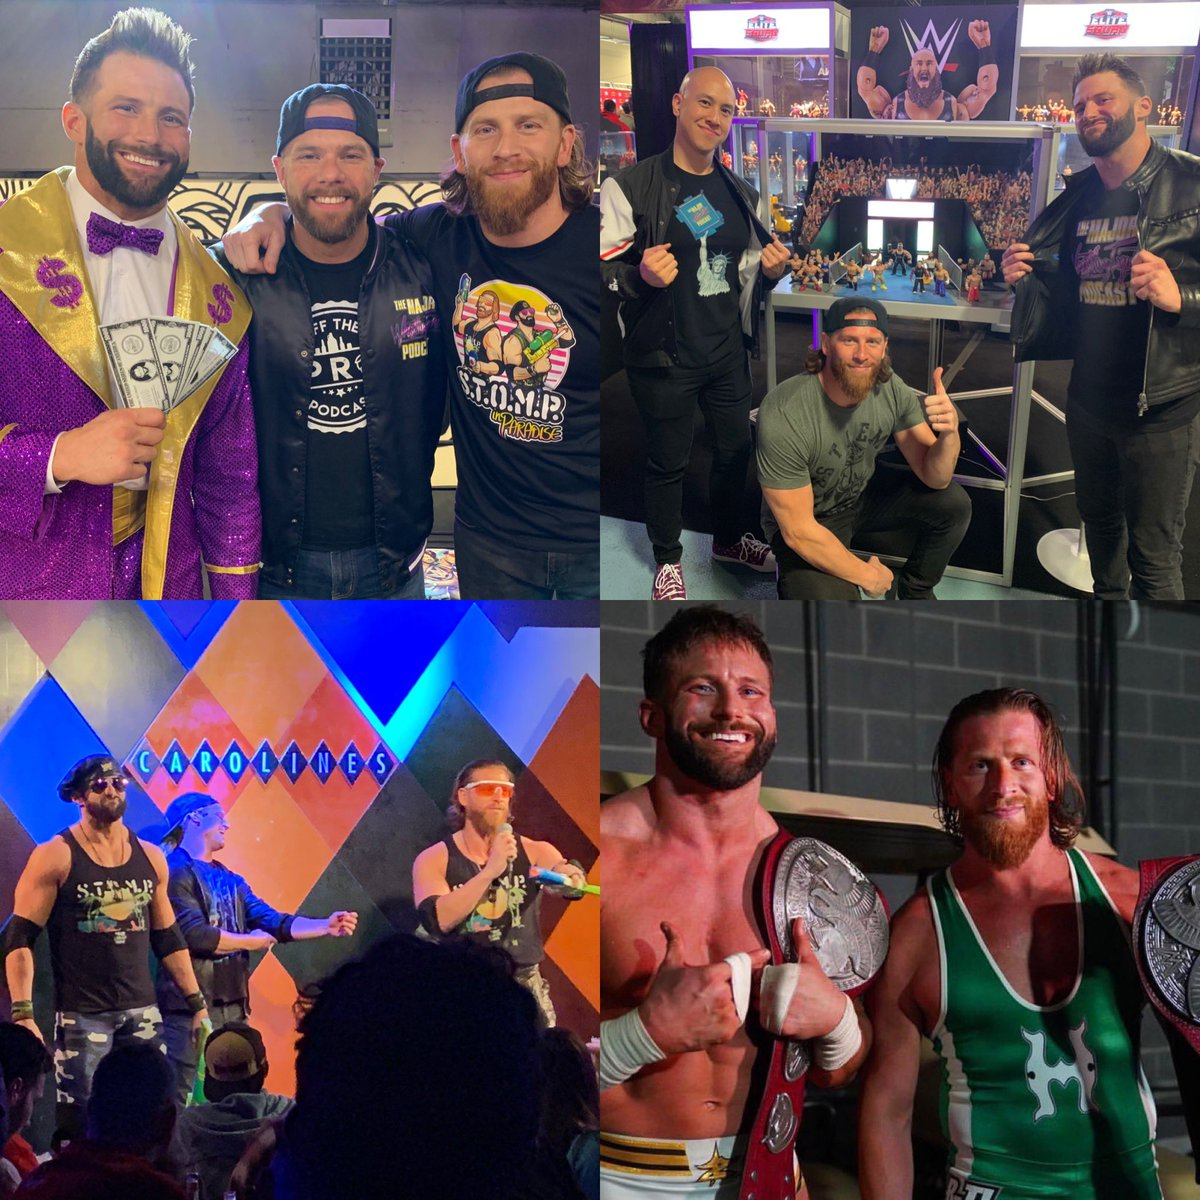 DOWNLOAD THIS WEEK'S @MajorWFPod!   @TheCurtHawkins & @ZackRyder discuss #WrestleMania week, all the new upcoming @Mattel figures, & much more!  RT TO BE ELIGIBLE TO WIN A #WWEEliteSquad HAT! 2 WINNERS!